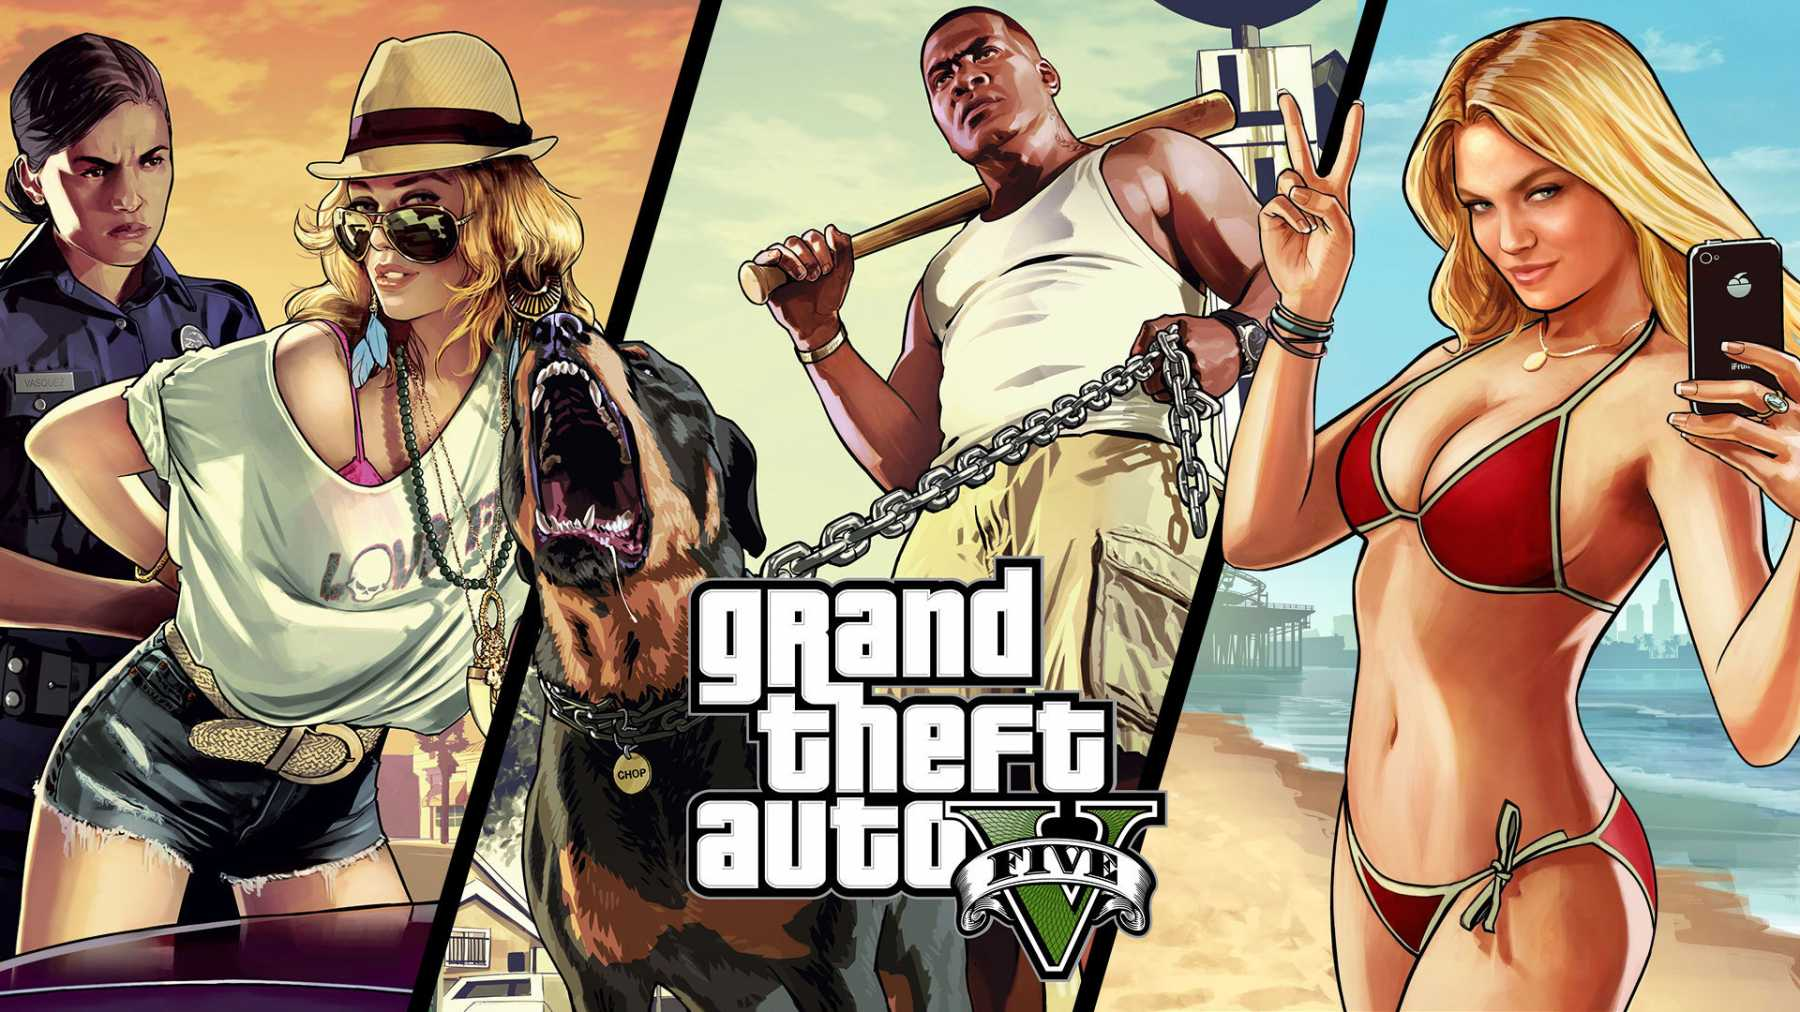 Rockstar Releases GTA V Update to Resolve Major Online Gameplay Issues